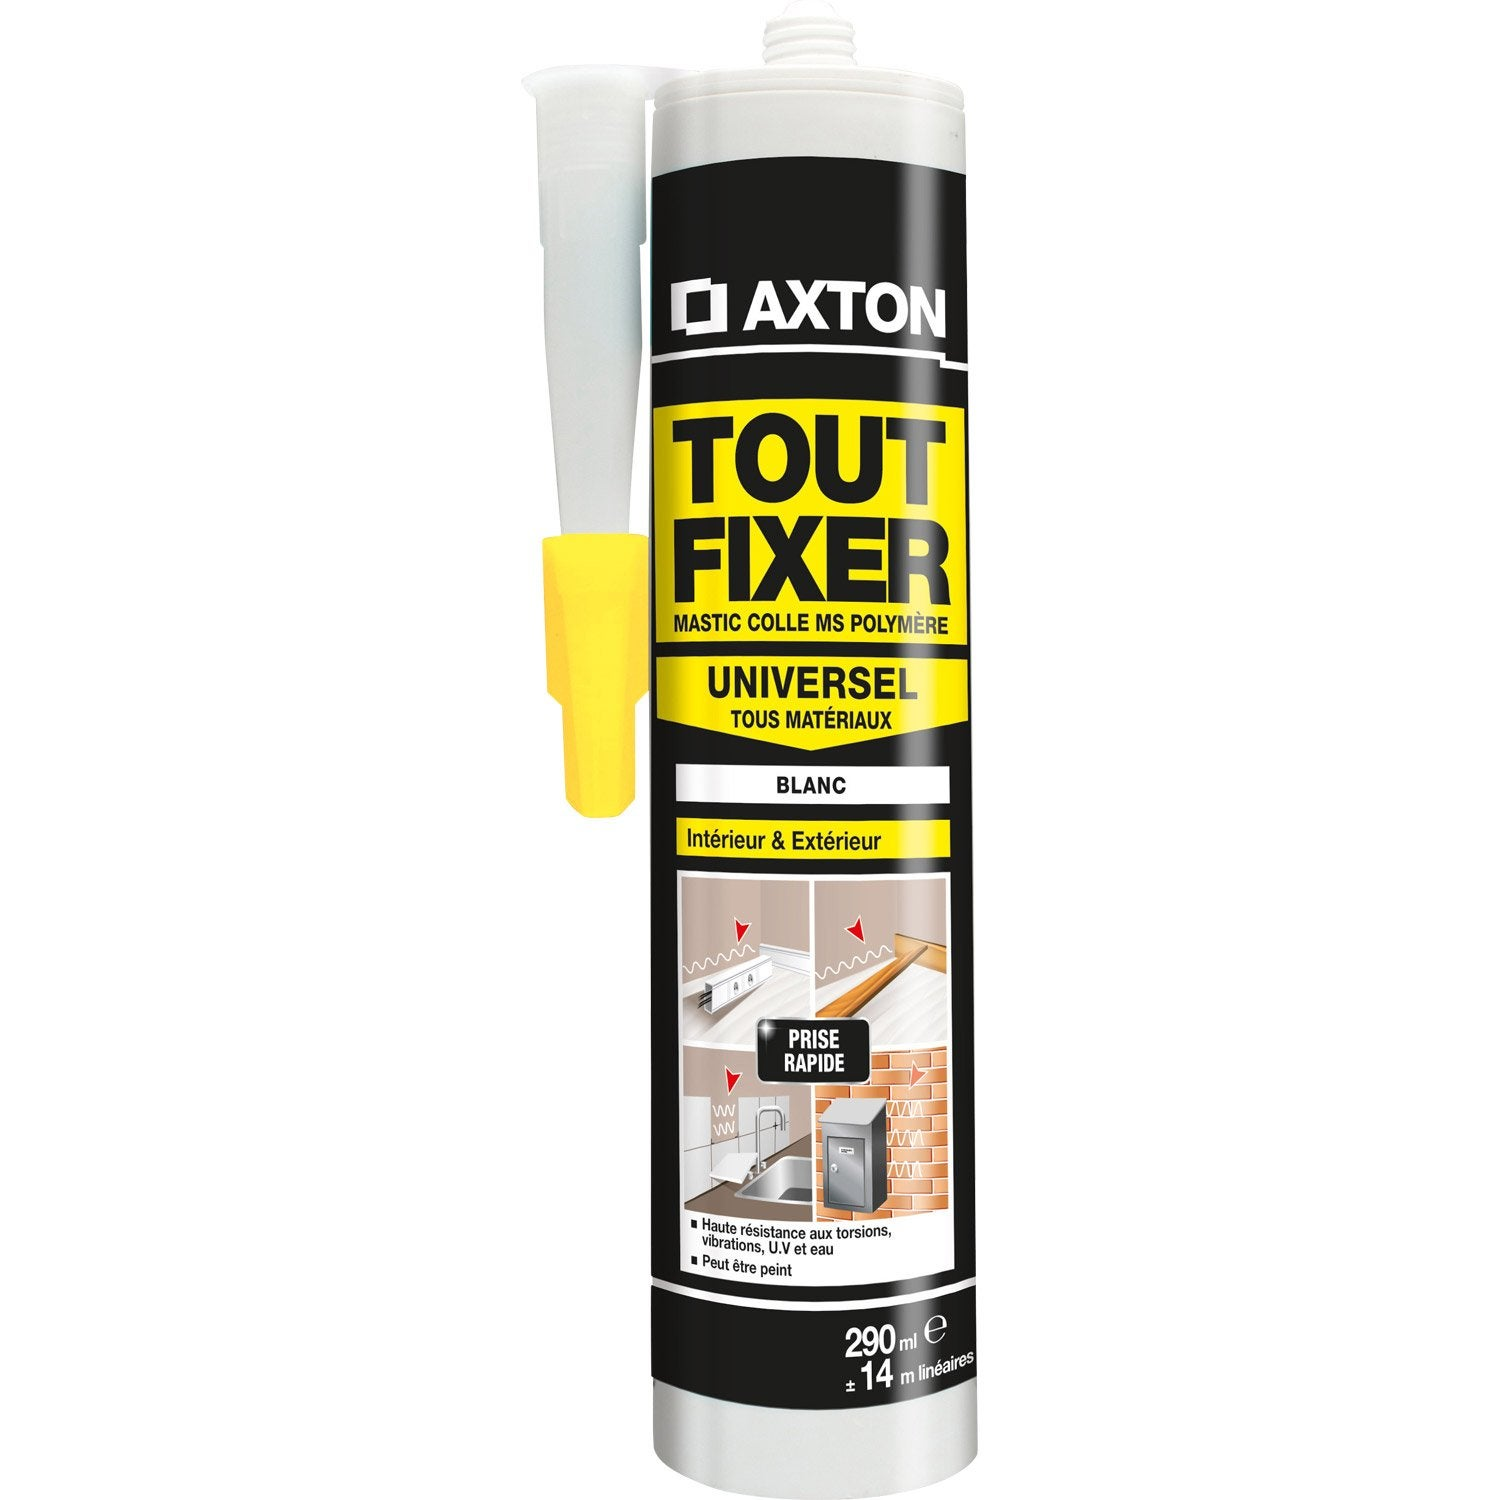 Colle mastic tout fixer axton 290 ml leroy merlin - Colle plexiglas leroy merlin ...